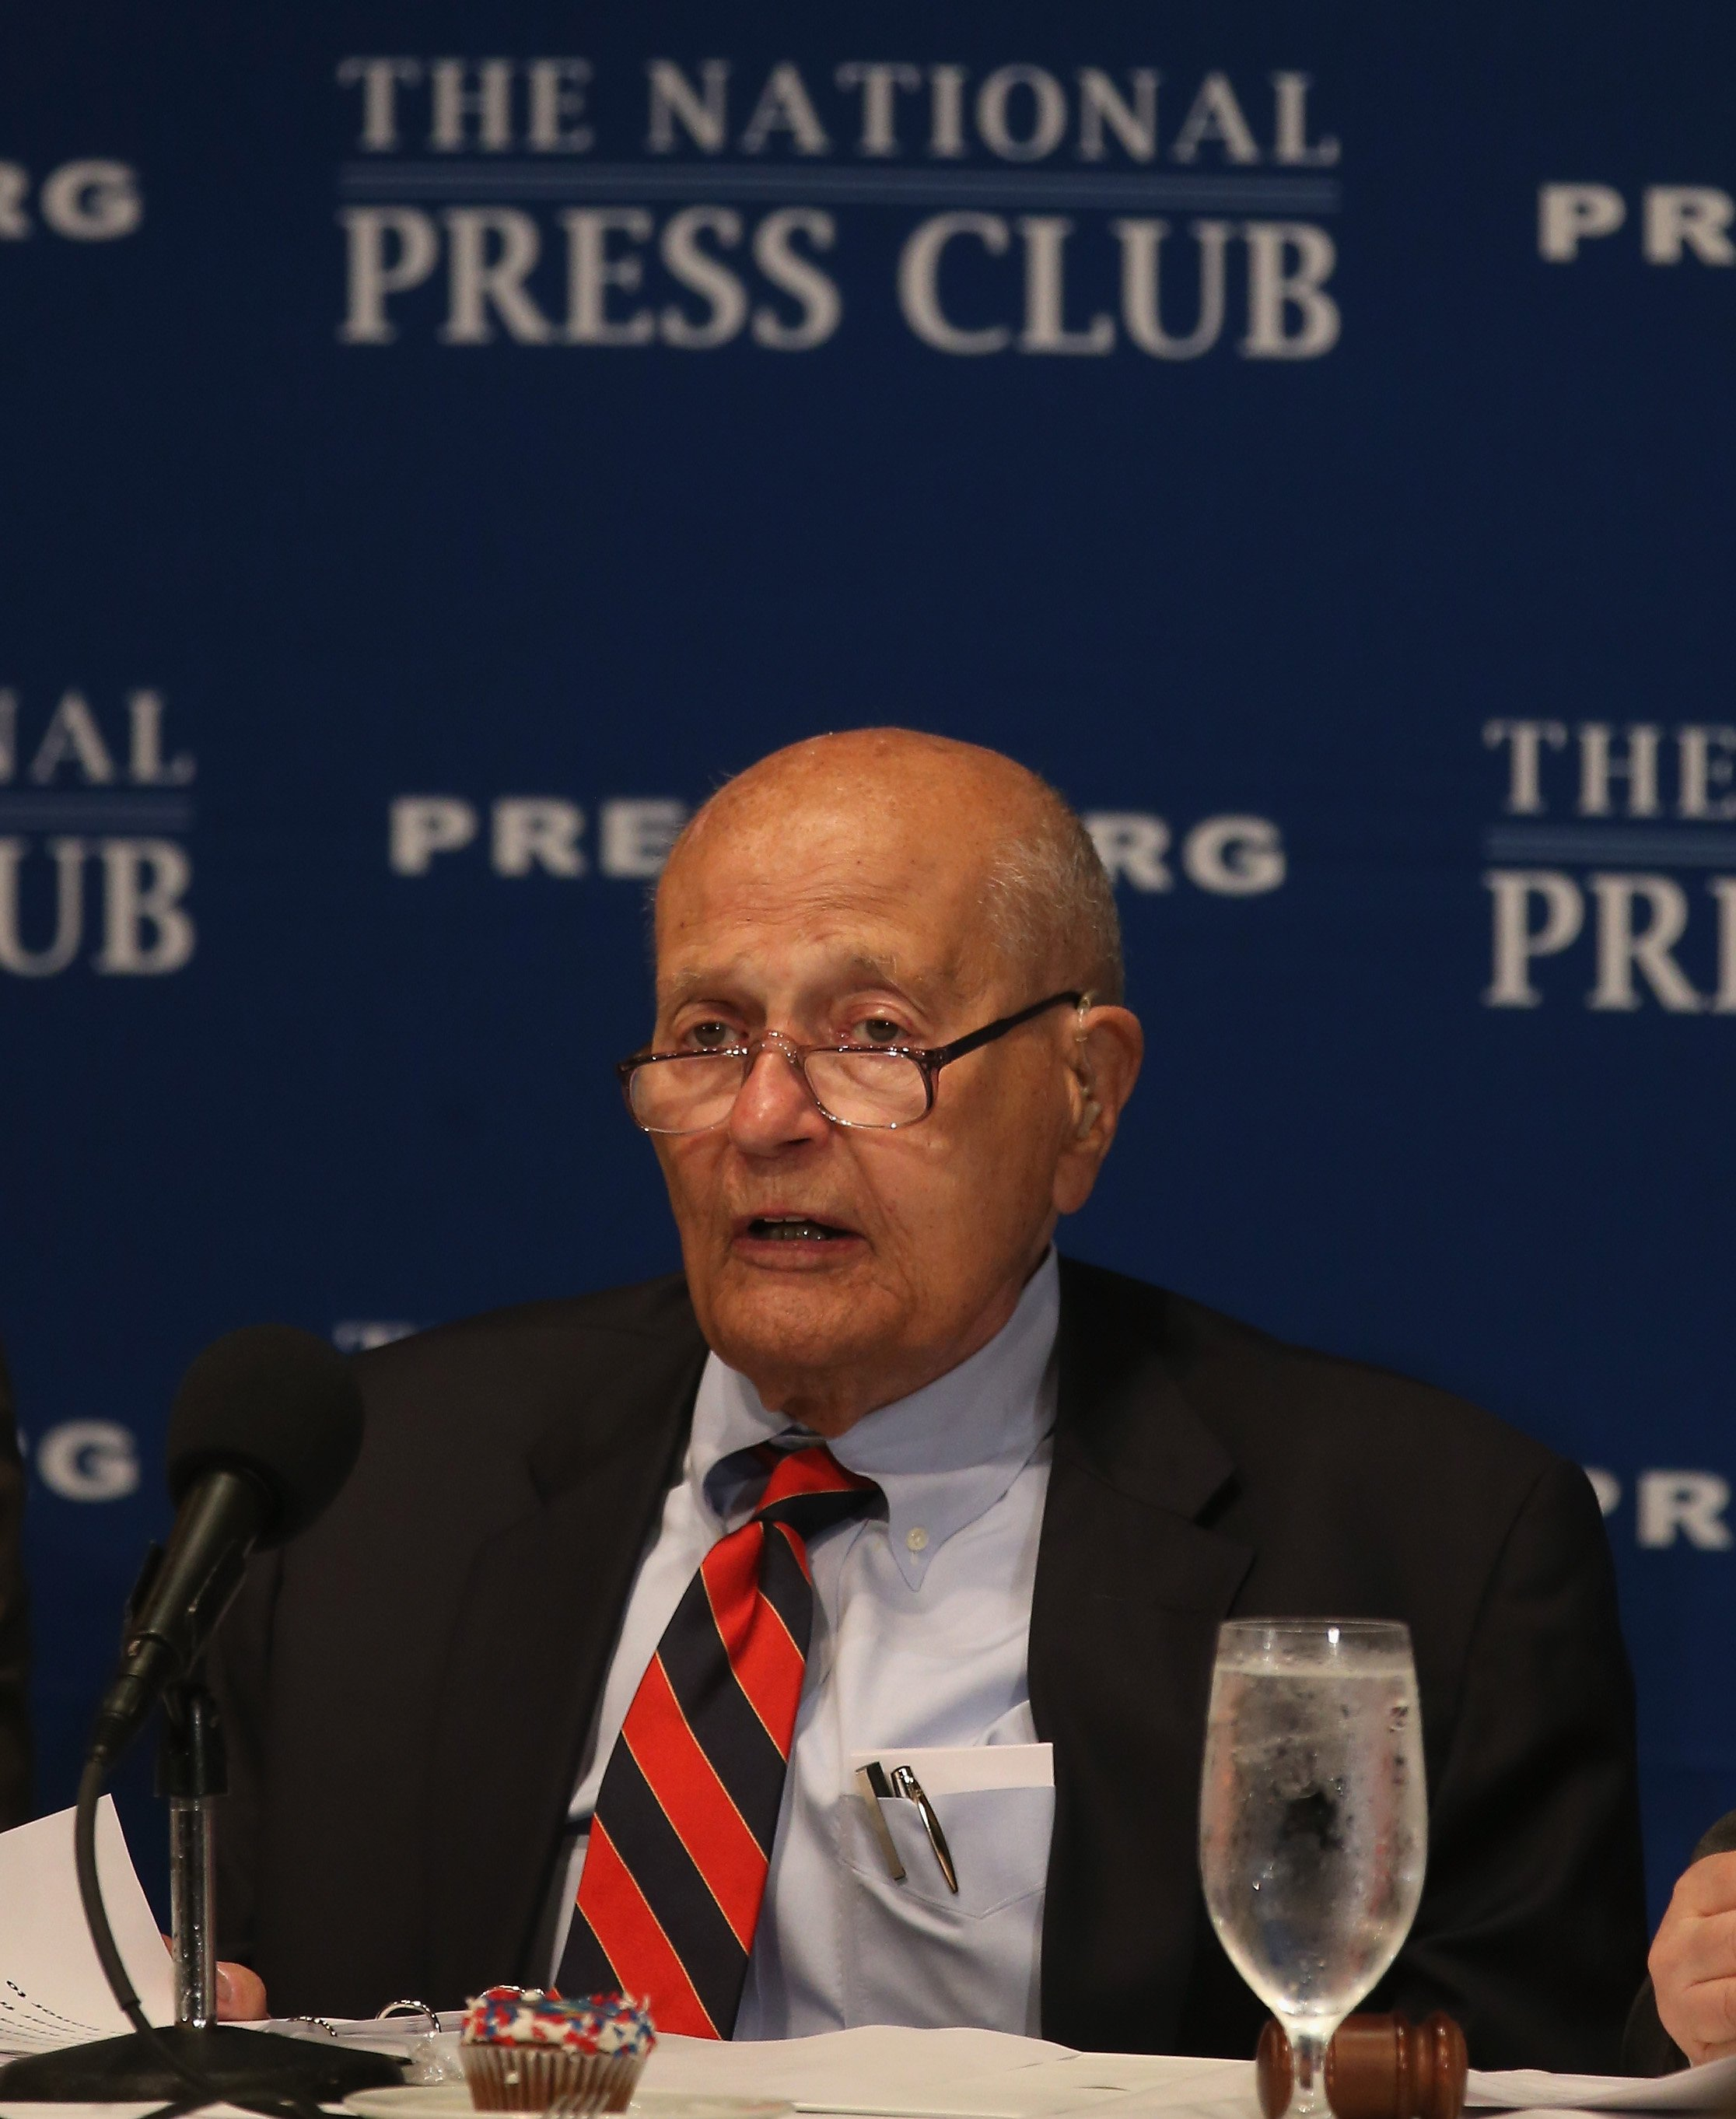 Rep. John Dingell delivering a speech at the National Press Club | Photo: Getty Images